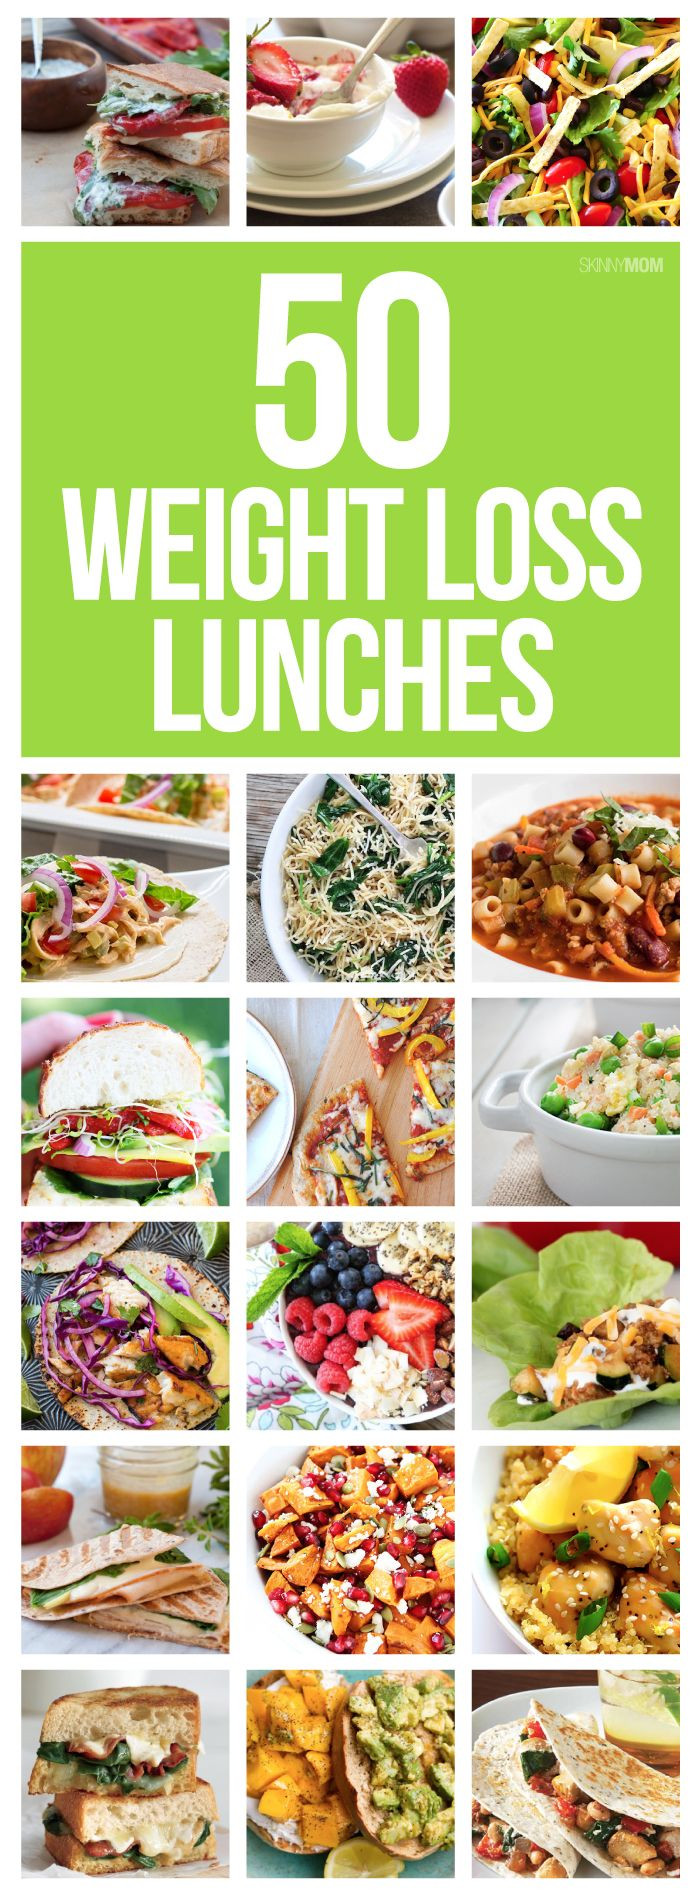 Healthy Lunches For Weight Loss  Nosh on 50 Healthy Lunches That ll Help You Lose Weight